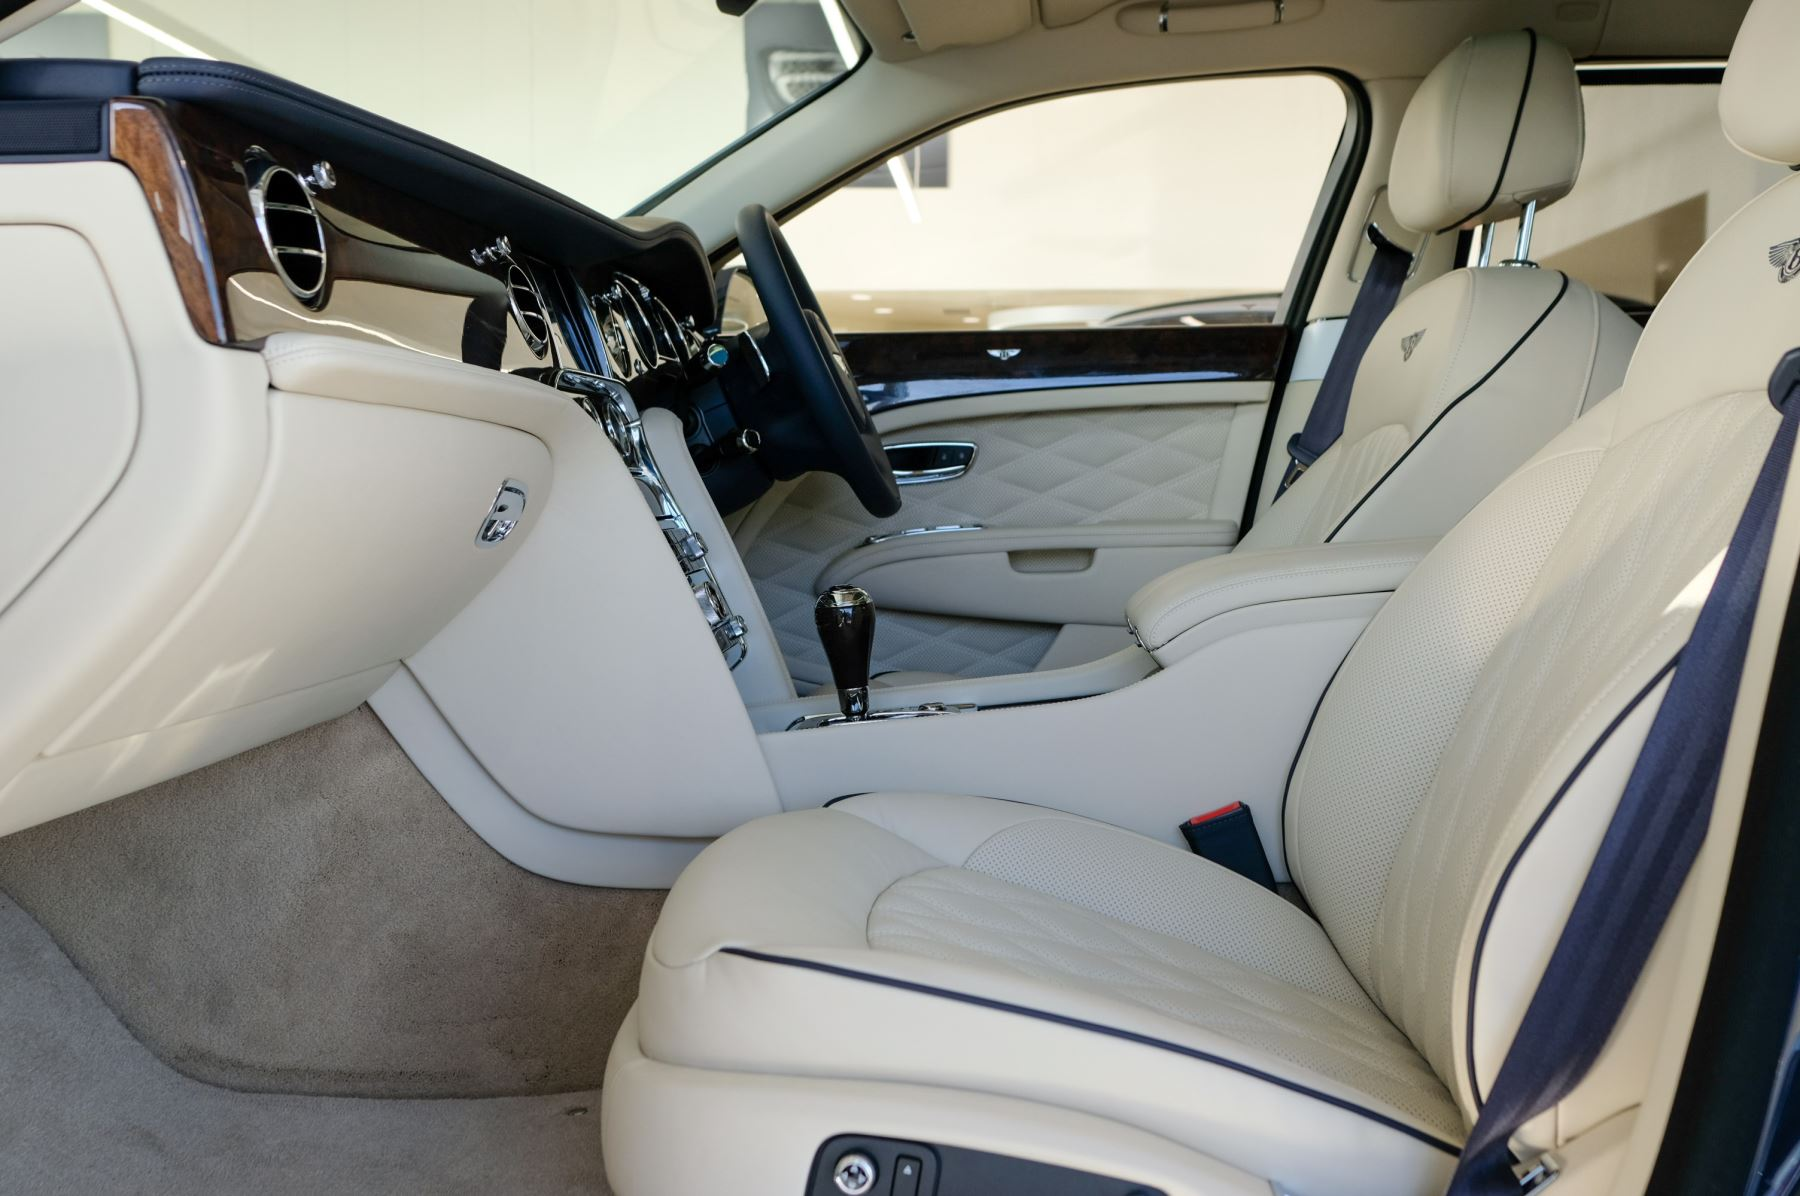 Bentley Mulsanne Speed 6.8 V8 Speed - Speed Premier, Entertainment and Comfort Specification image 8